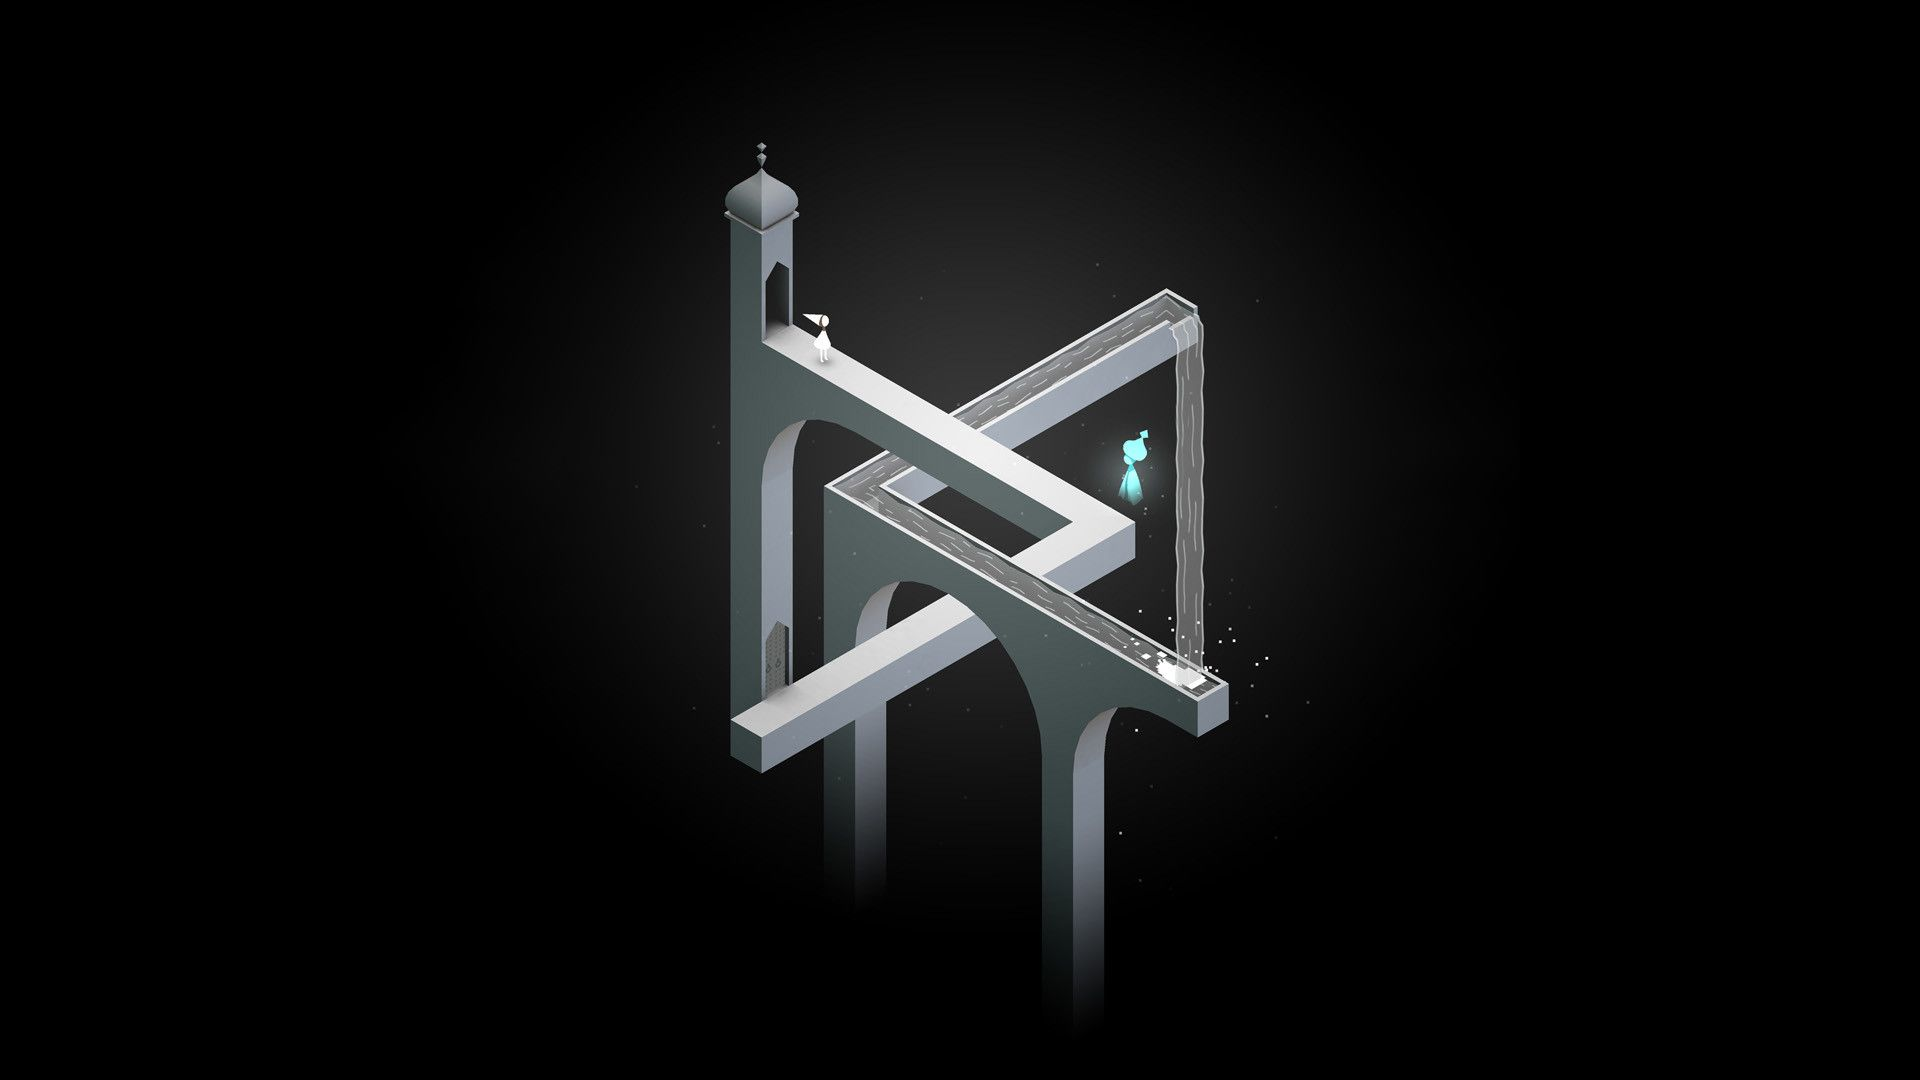 1920x1080 Monument Valley Game Wallpaper Google Search Monument Valley Game Valley Game Monument Valley